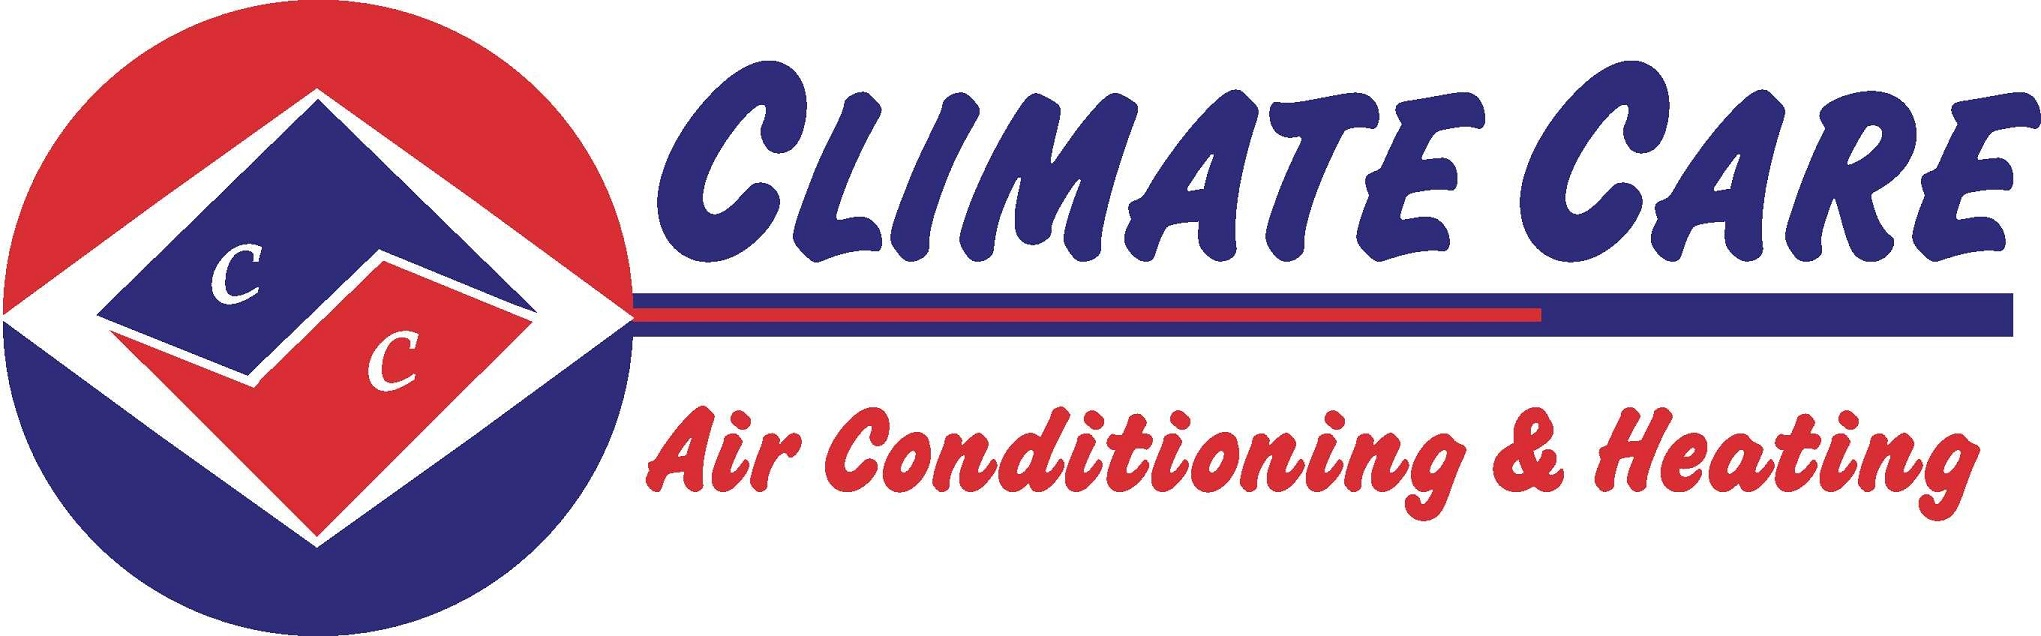 Air Conditioning Heating Contractors Near Dallas 75243 The Good